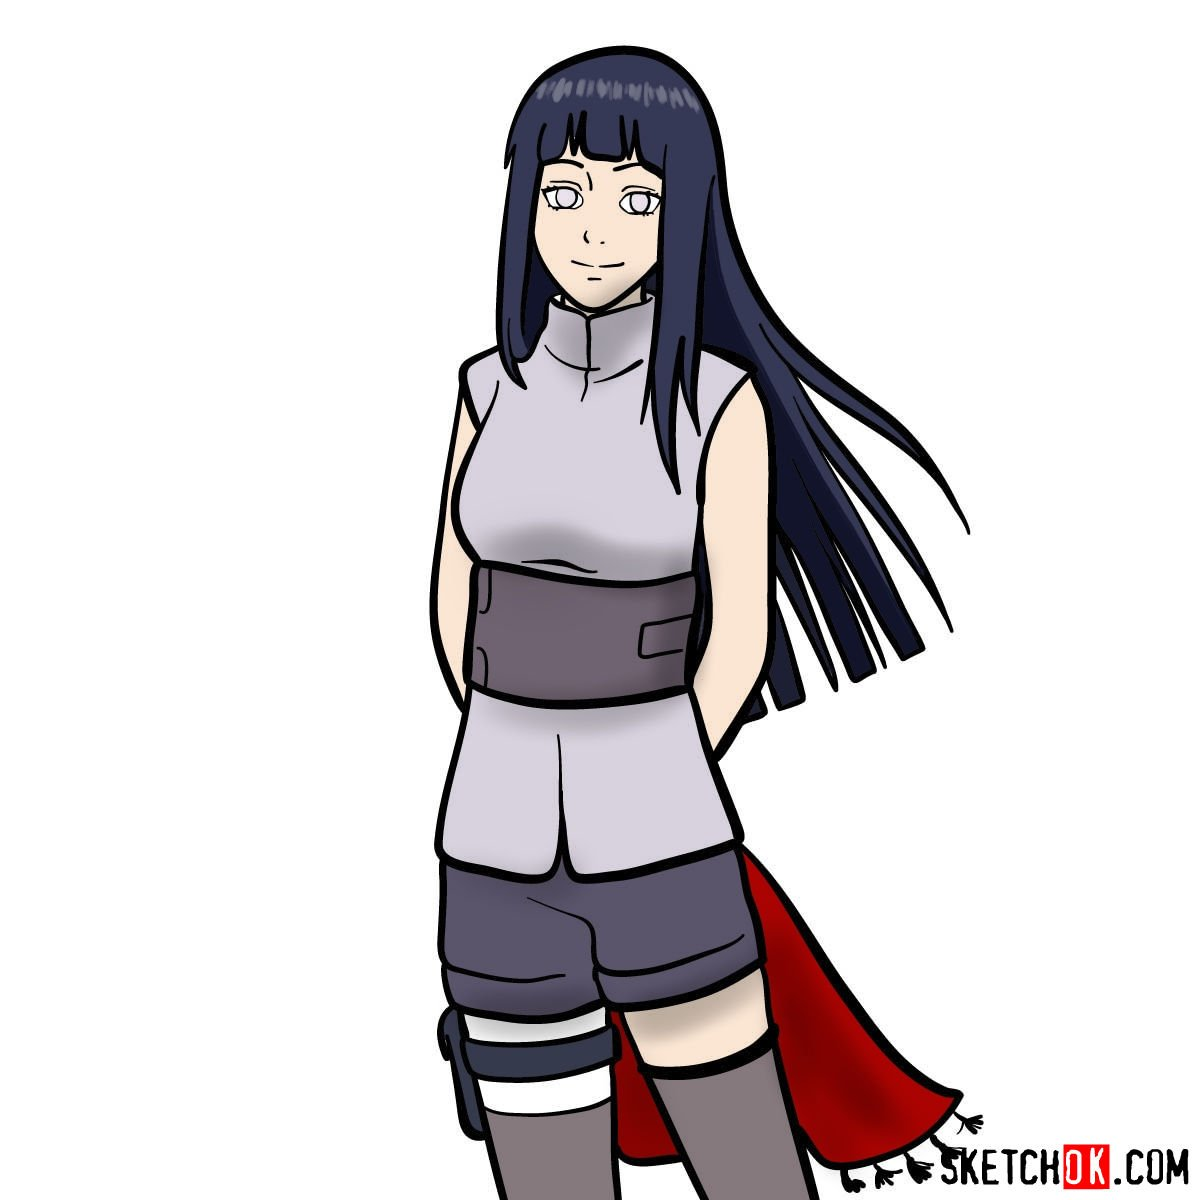 How to draw Hinata from Naruto anime